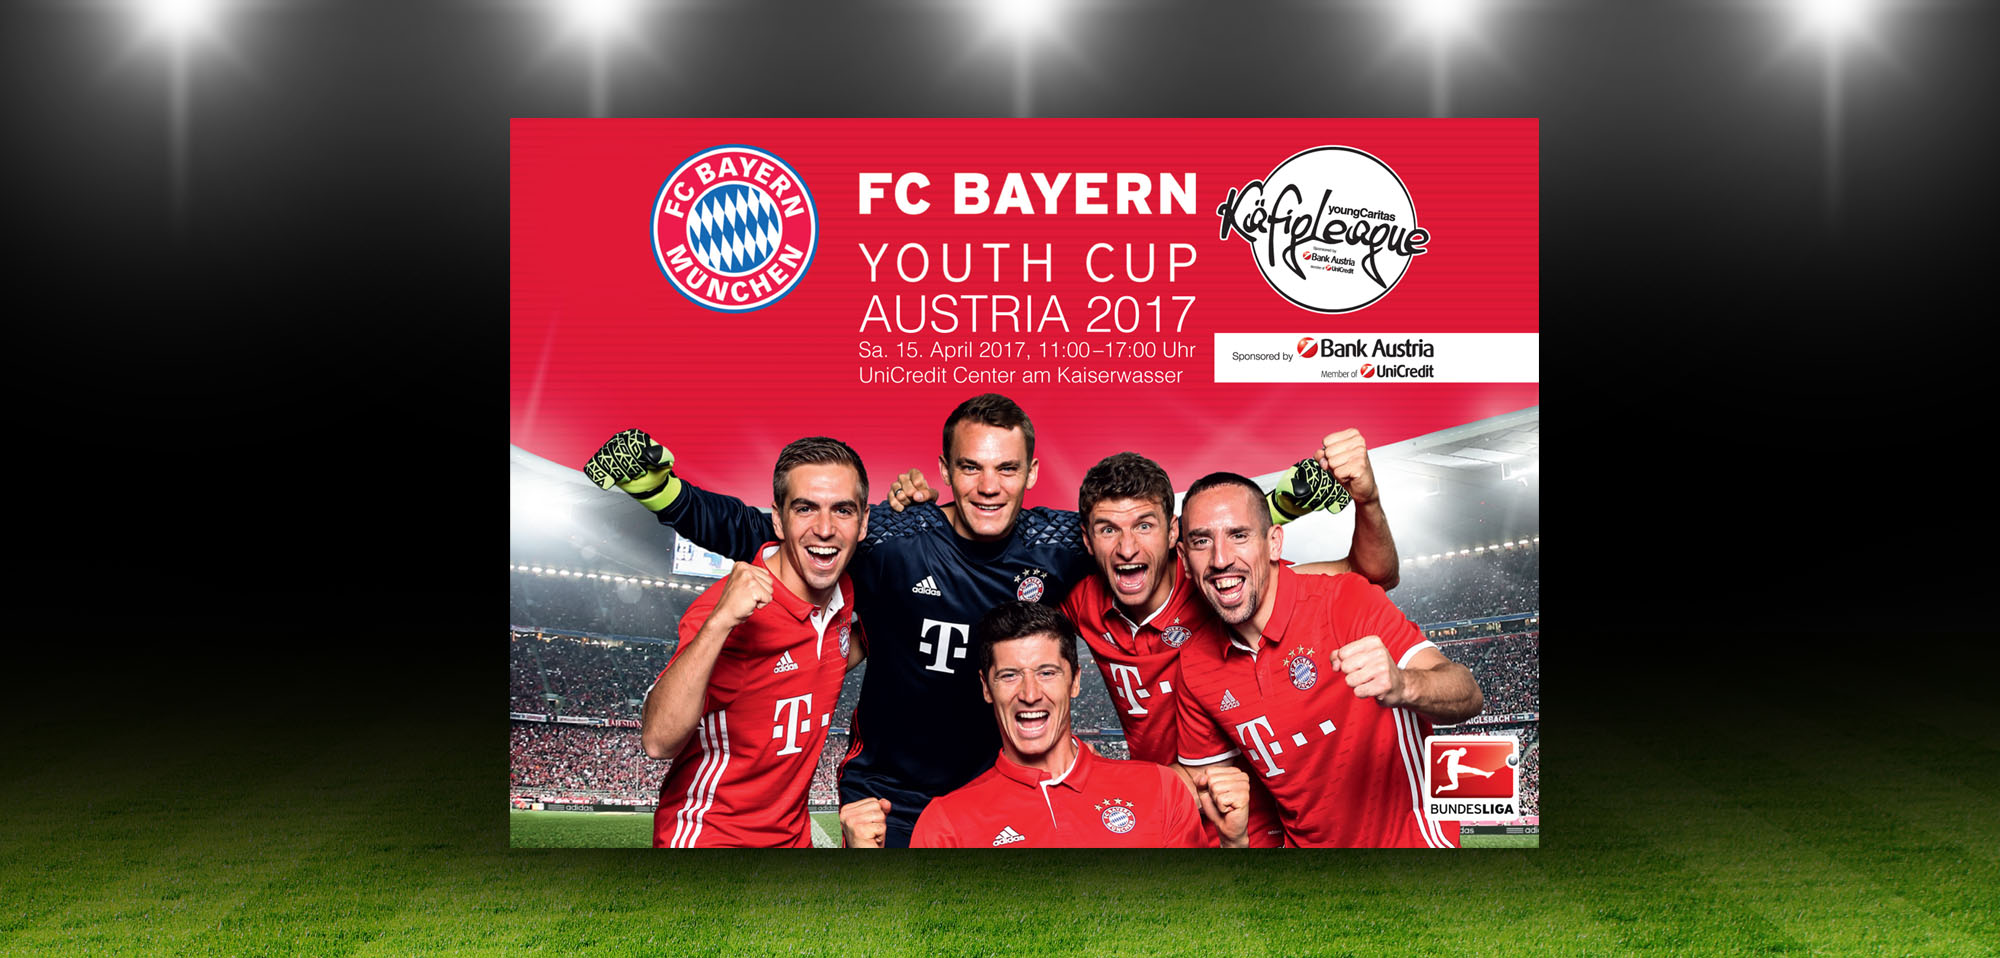 fc bayern youth cup austria 2017 sport. Black Bedroom Furniture Sets. Home Design Ideas